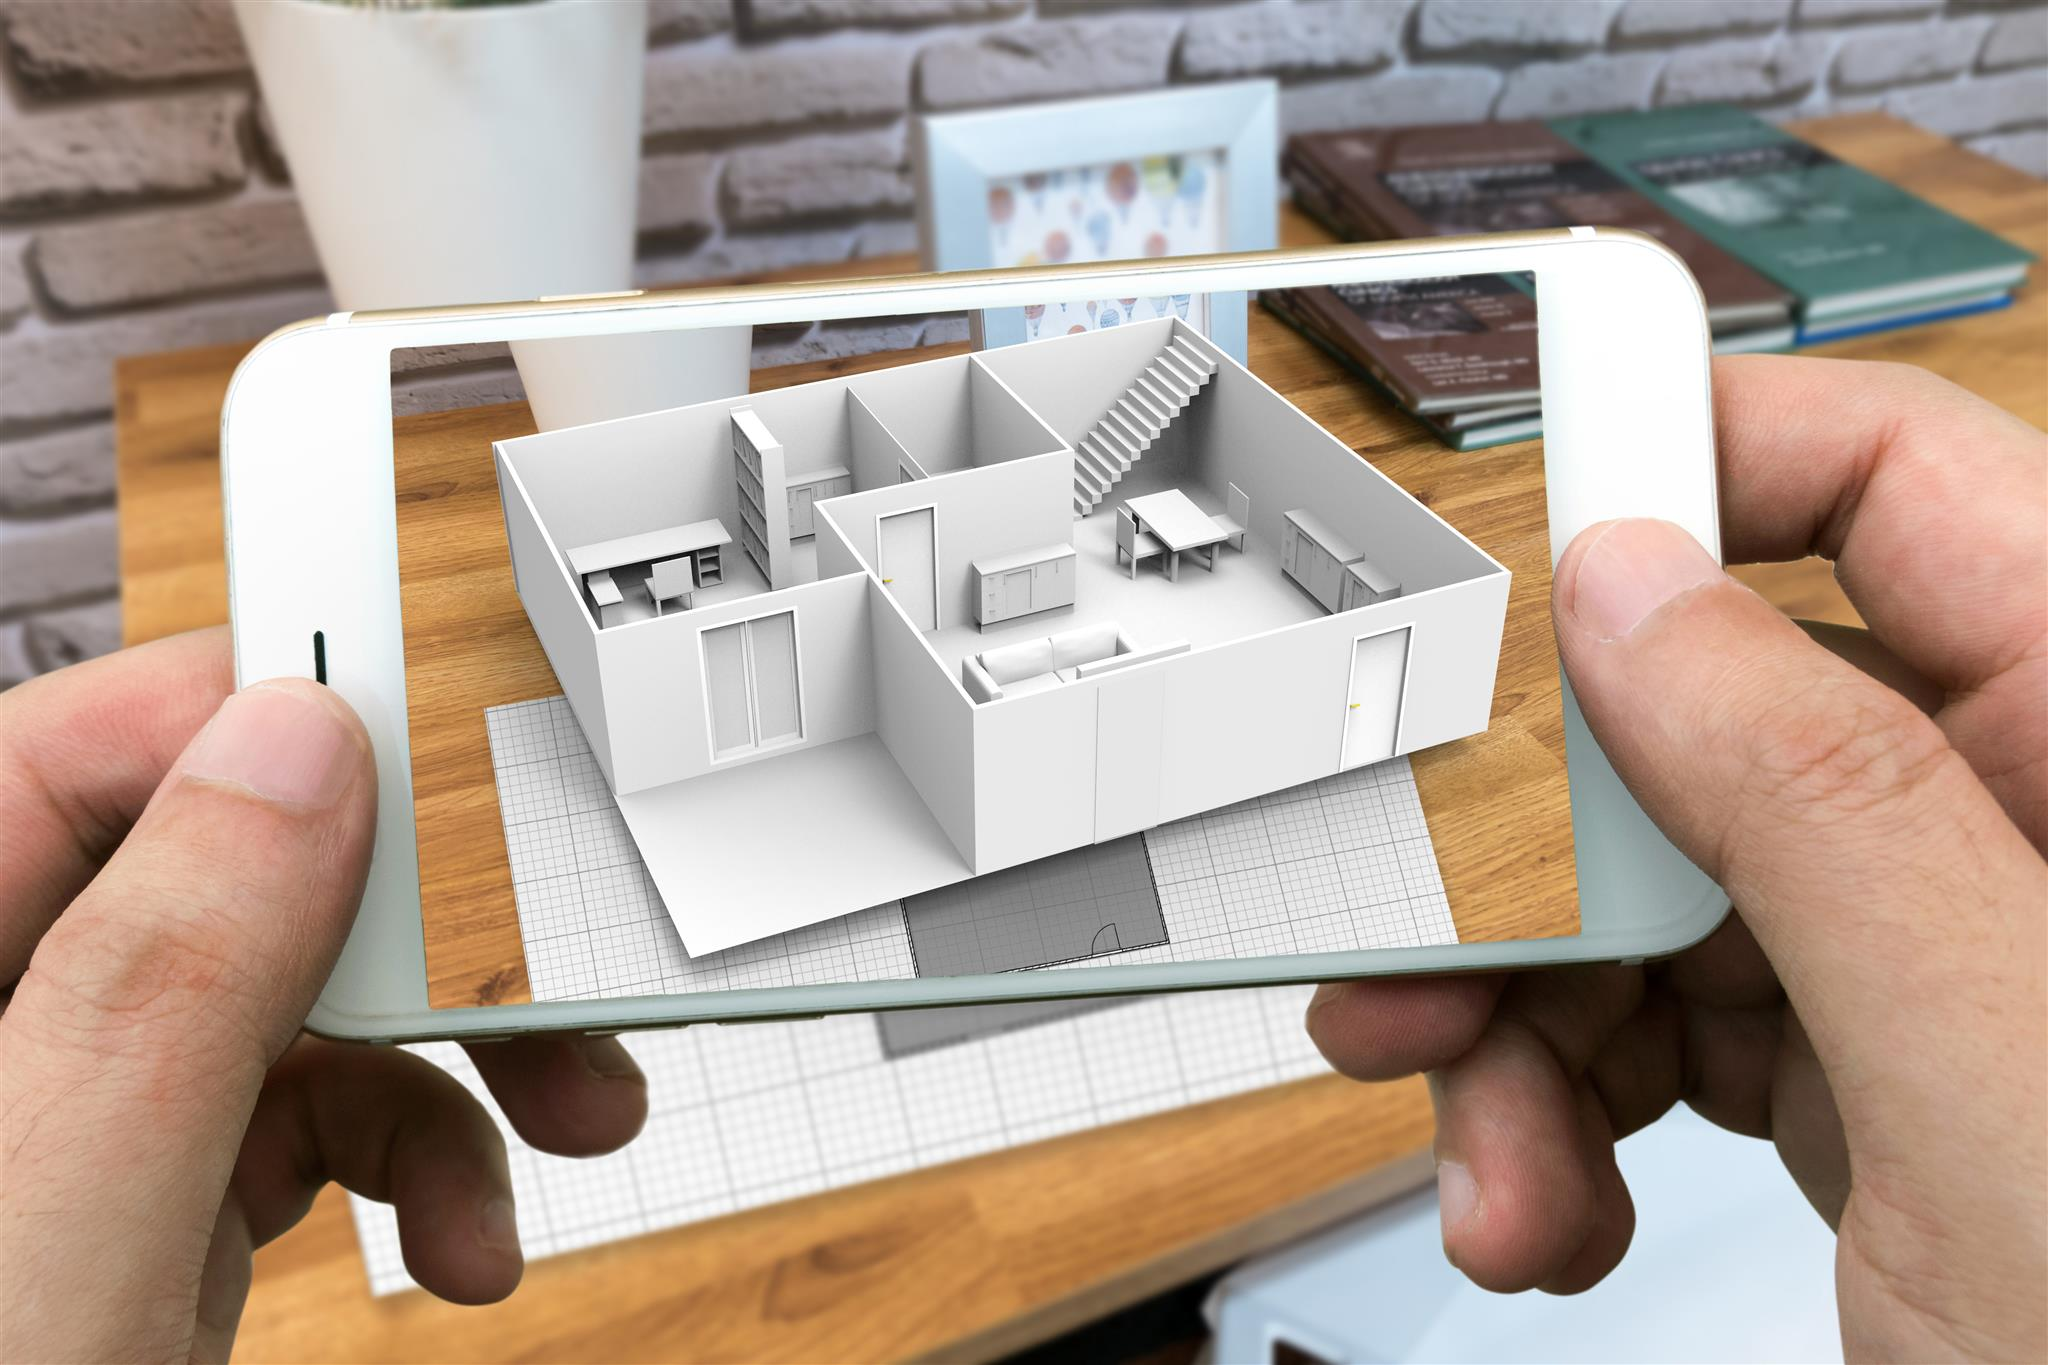 Gamifying Retail With Augmented Reality